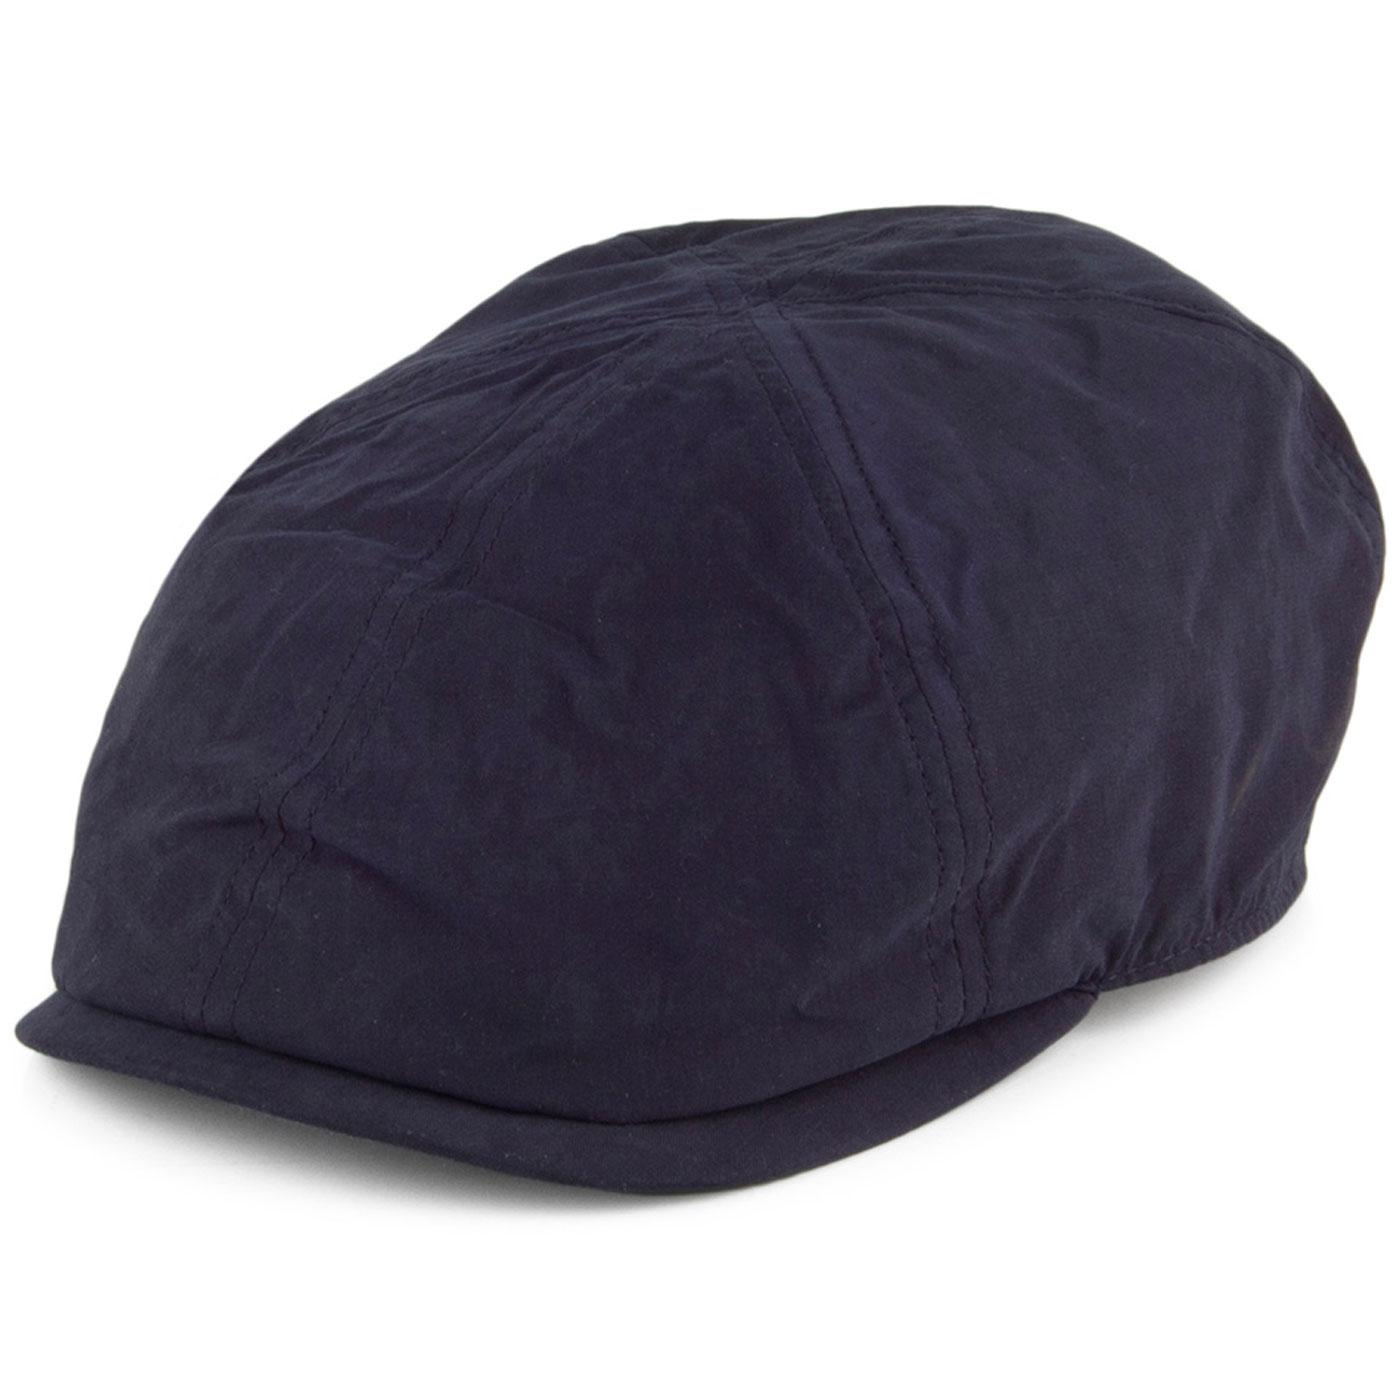 FAILSWORTH Micro 6 Panel Retro Newsboy Cap (Navy)